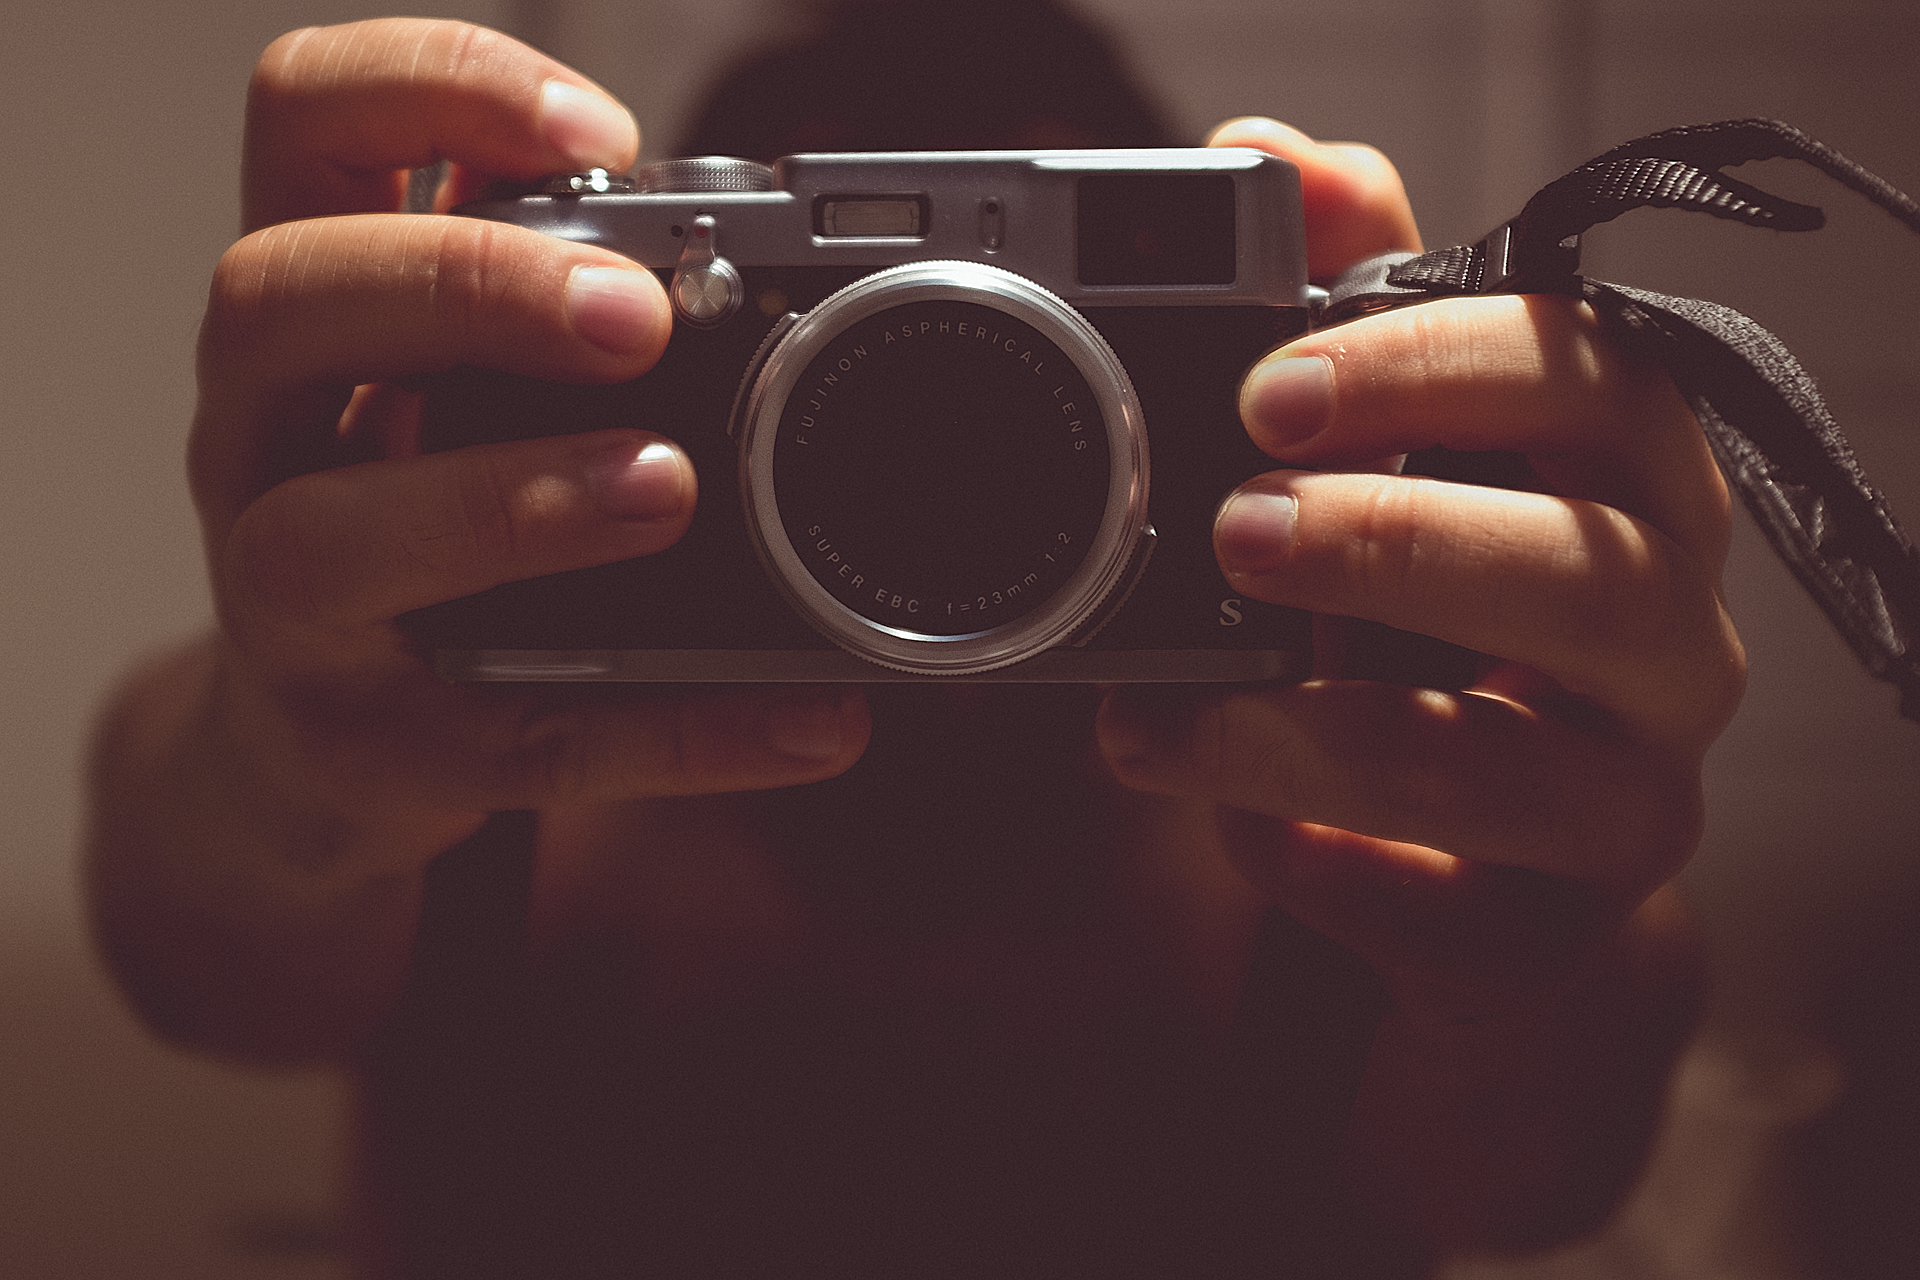 Day 226: The X100S